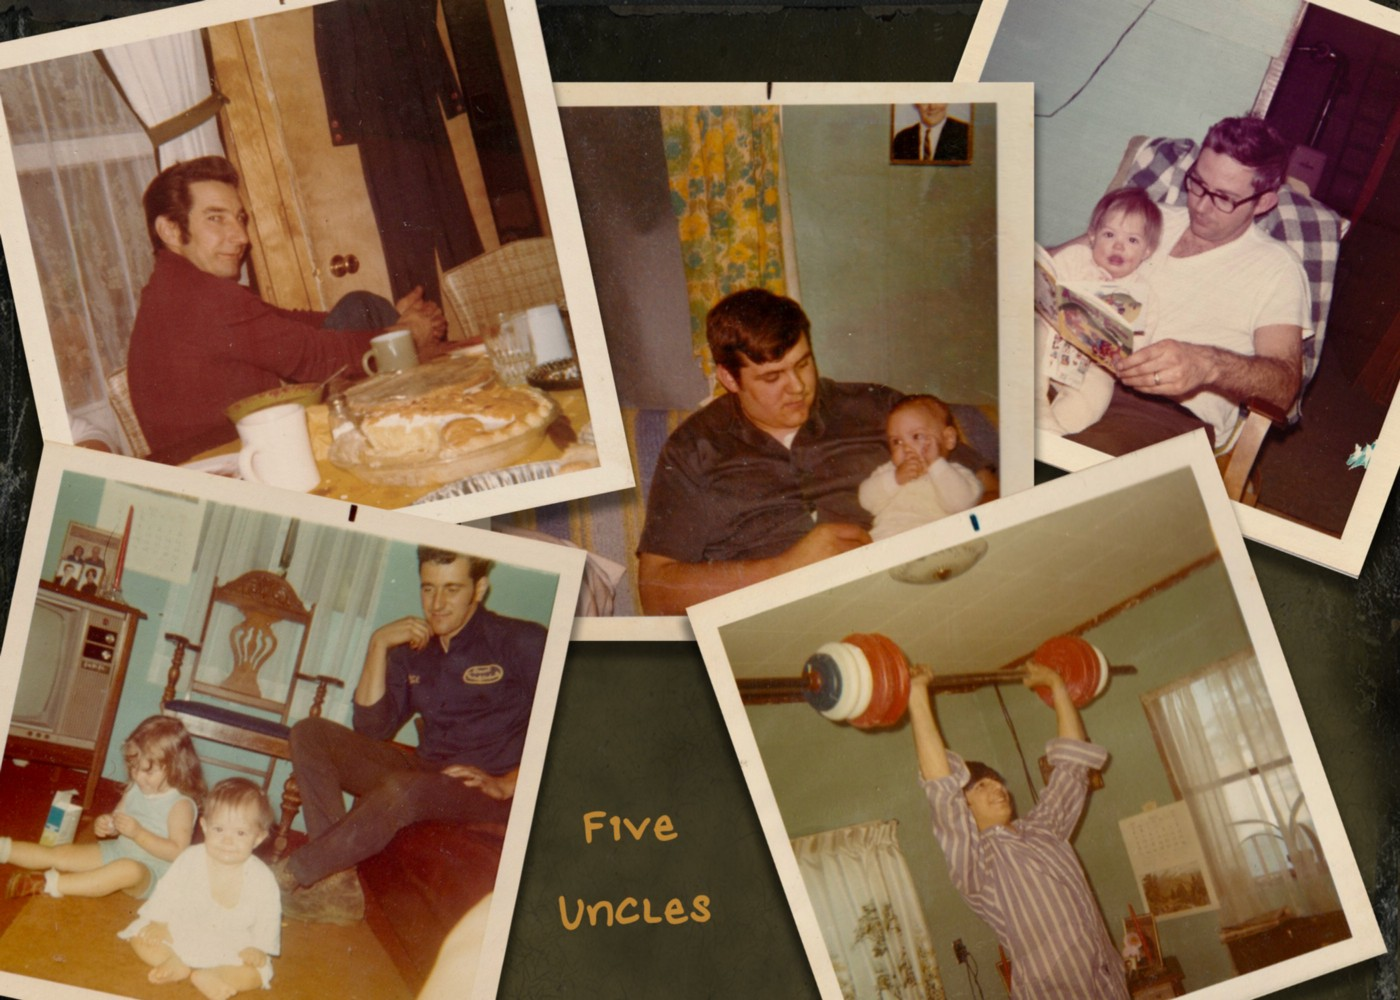 5 snapshots of young men in the 1970s, three with the author as a baby